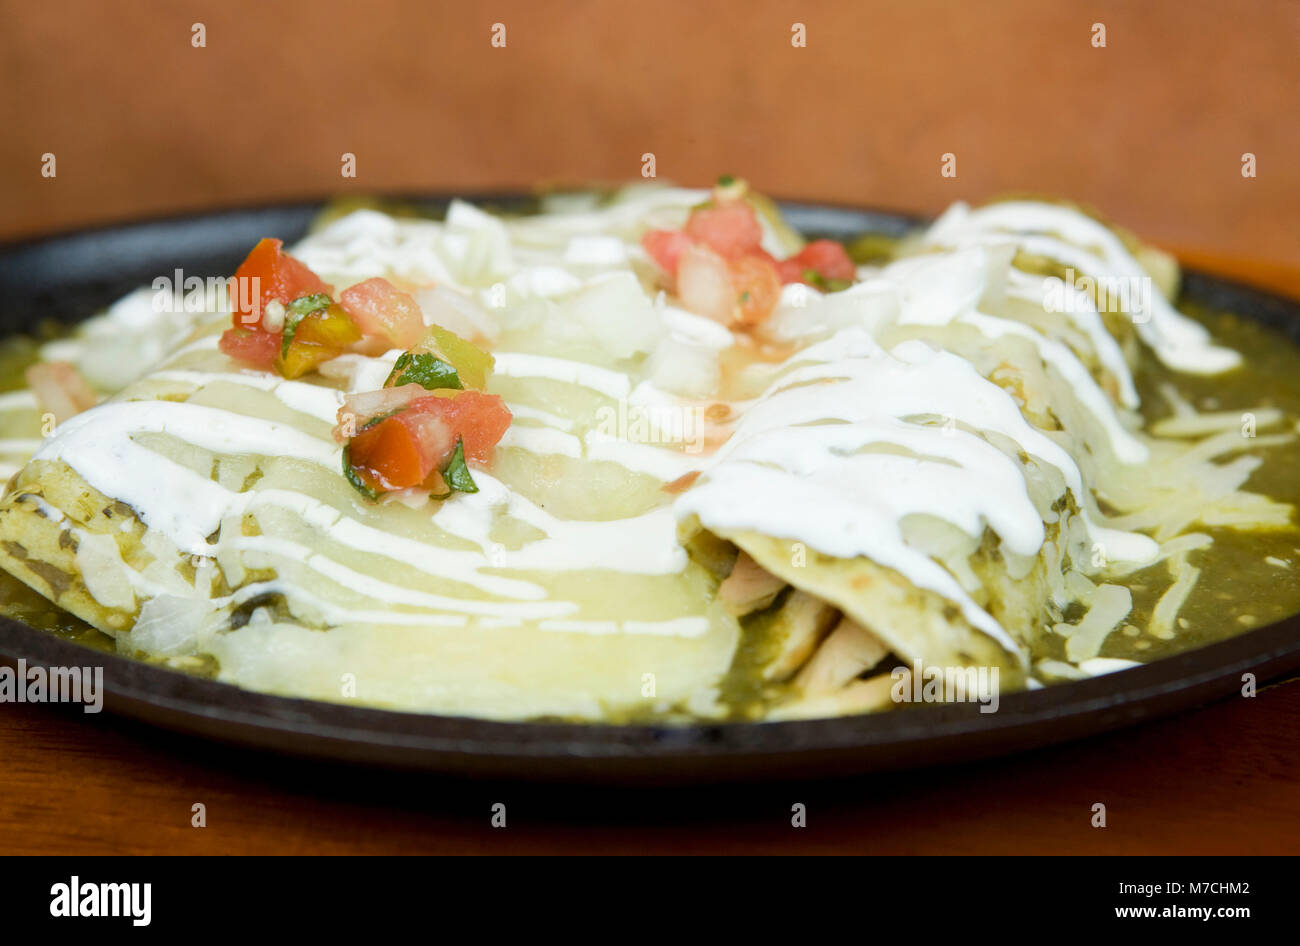 Close-up of enchiladas in a plate Stock Photo